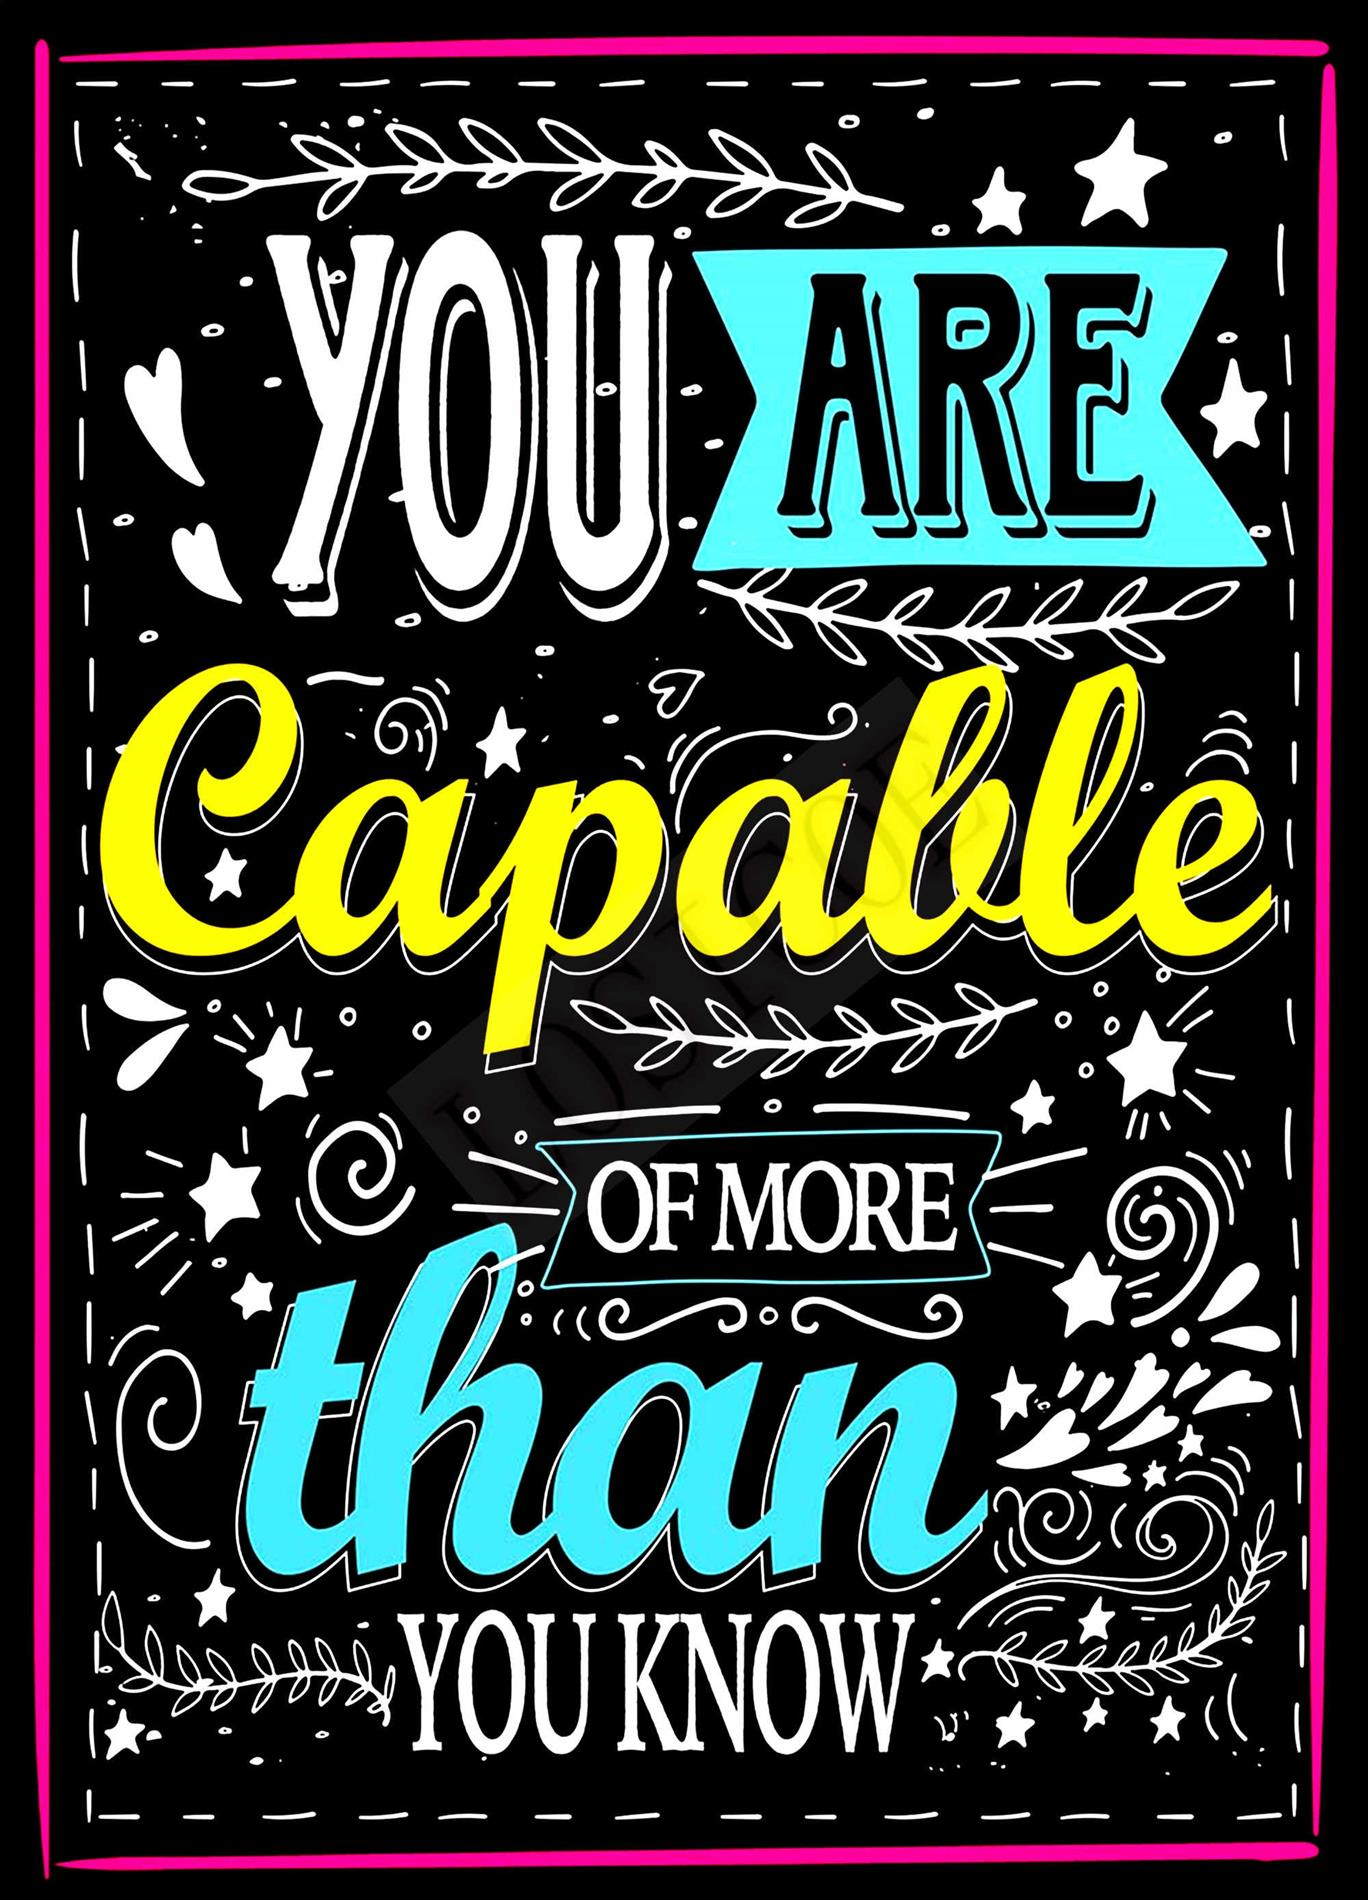 You are capable of more than you know!